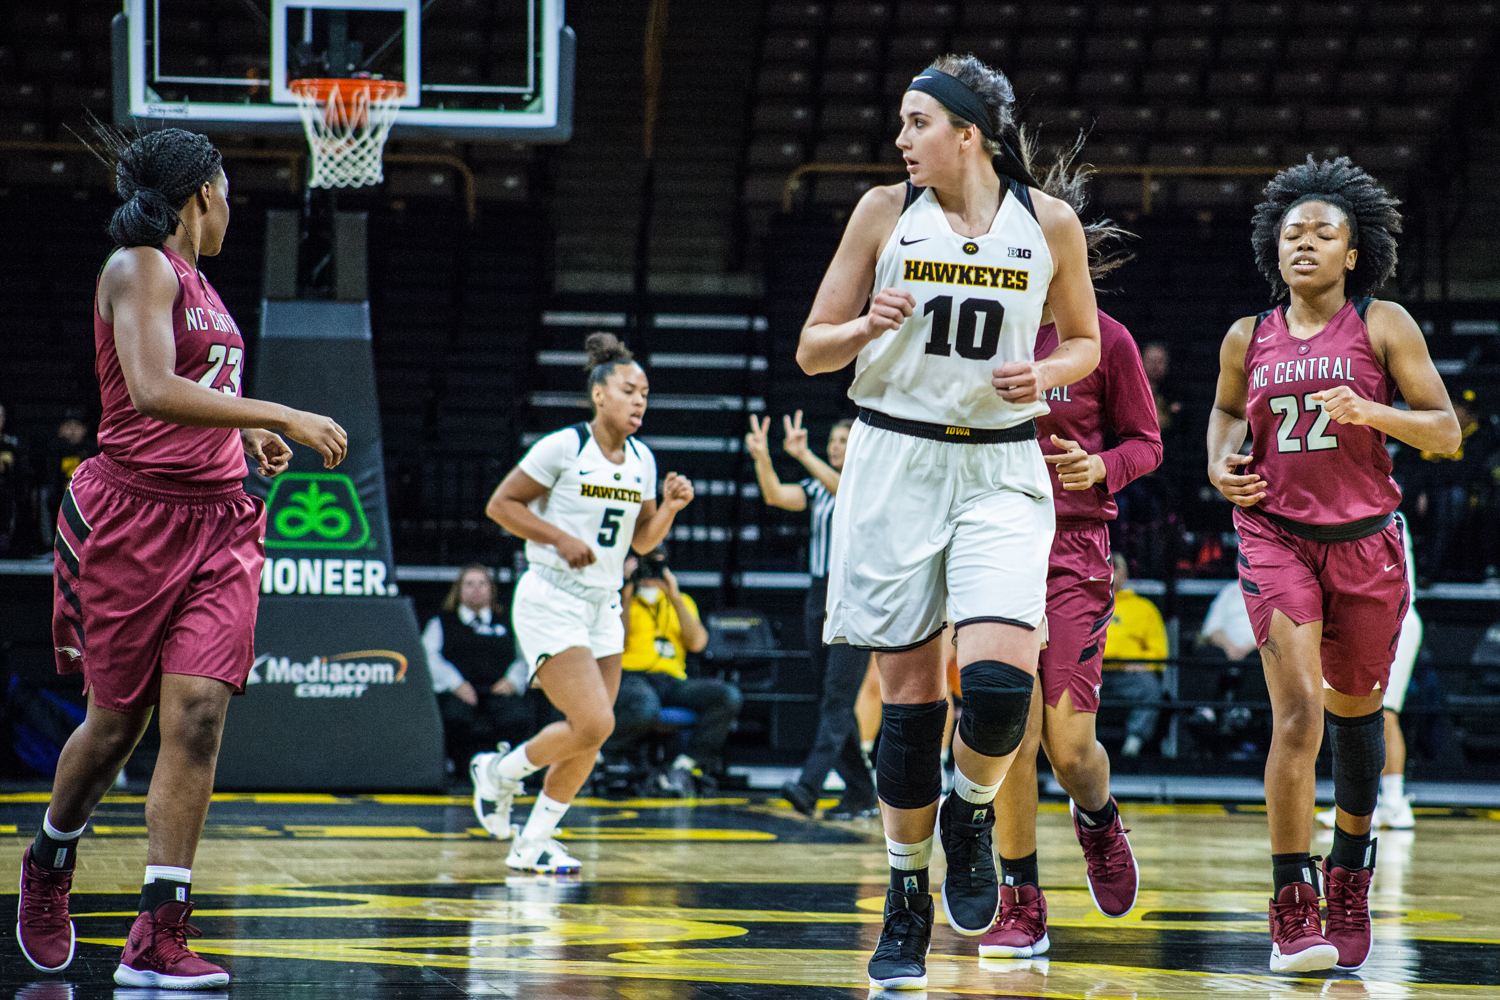 Iowa center Megan Gustafson runs during a women's basketball game between Iowa and North Carolina Central at Carver-Hawkeye Arena on Saturday, Nov. 17, 2018. The Hawkeyes devastated the visiting Eagles, 106-39.